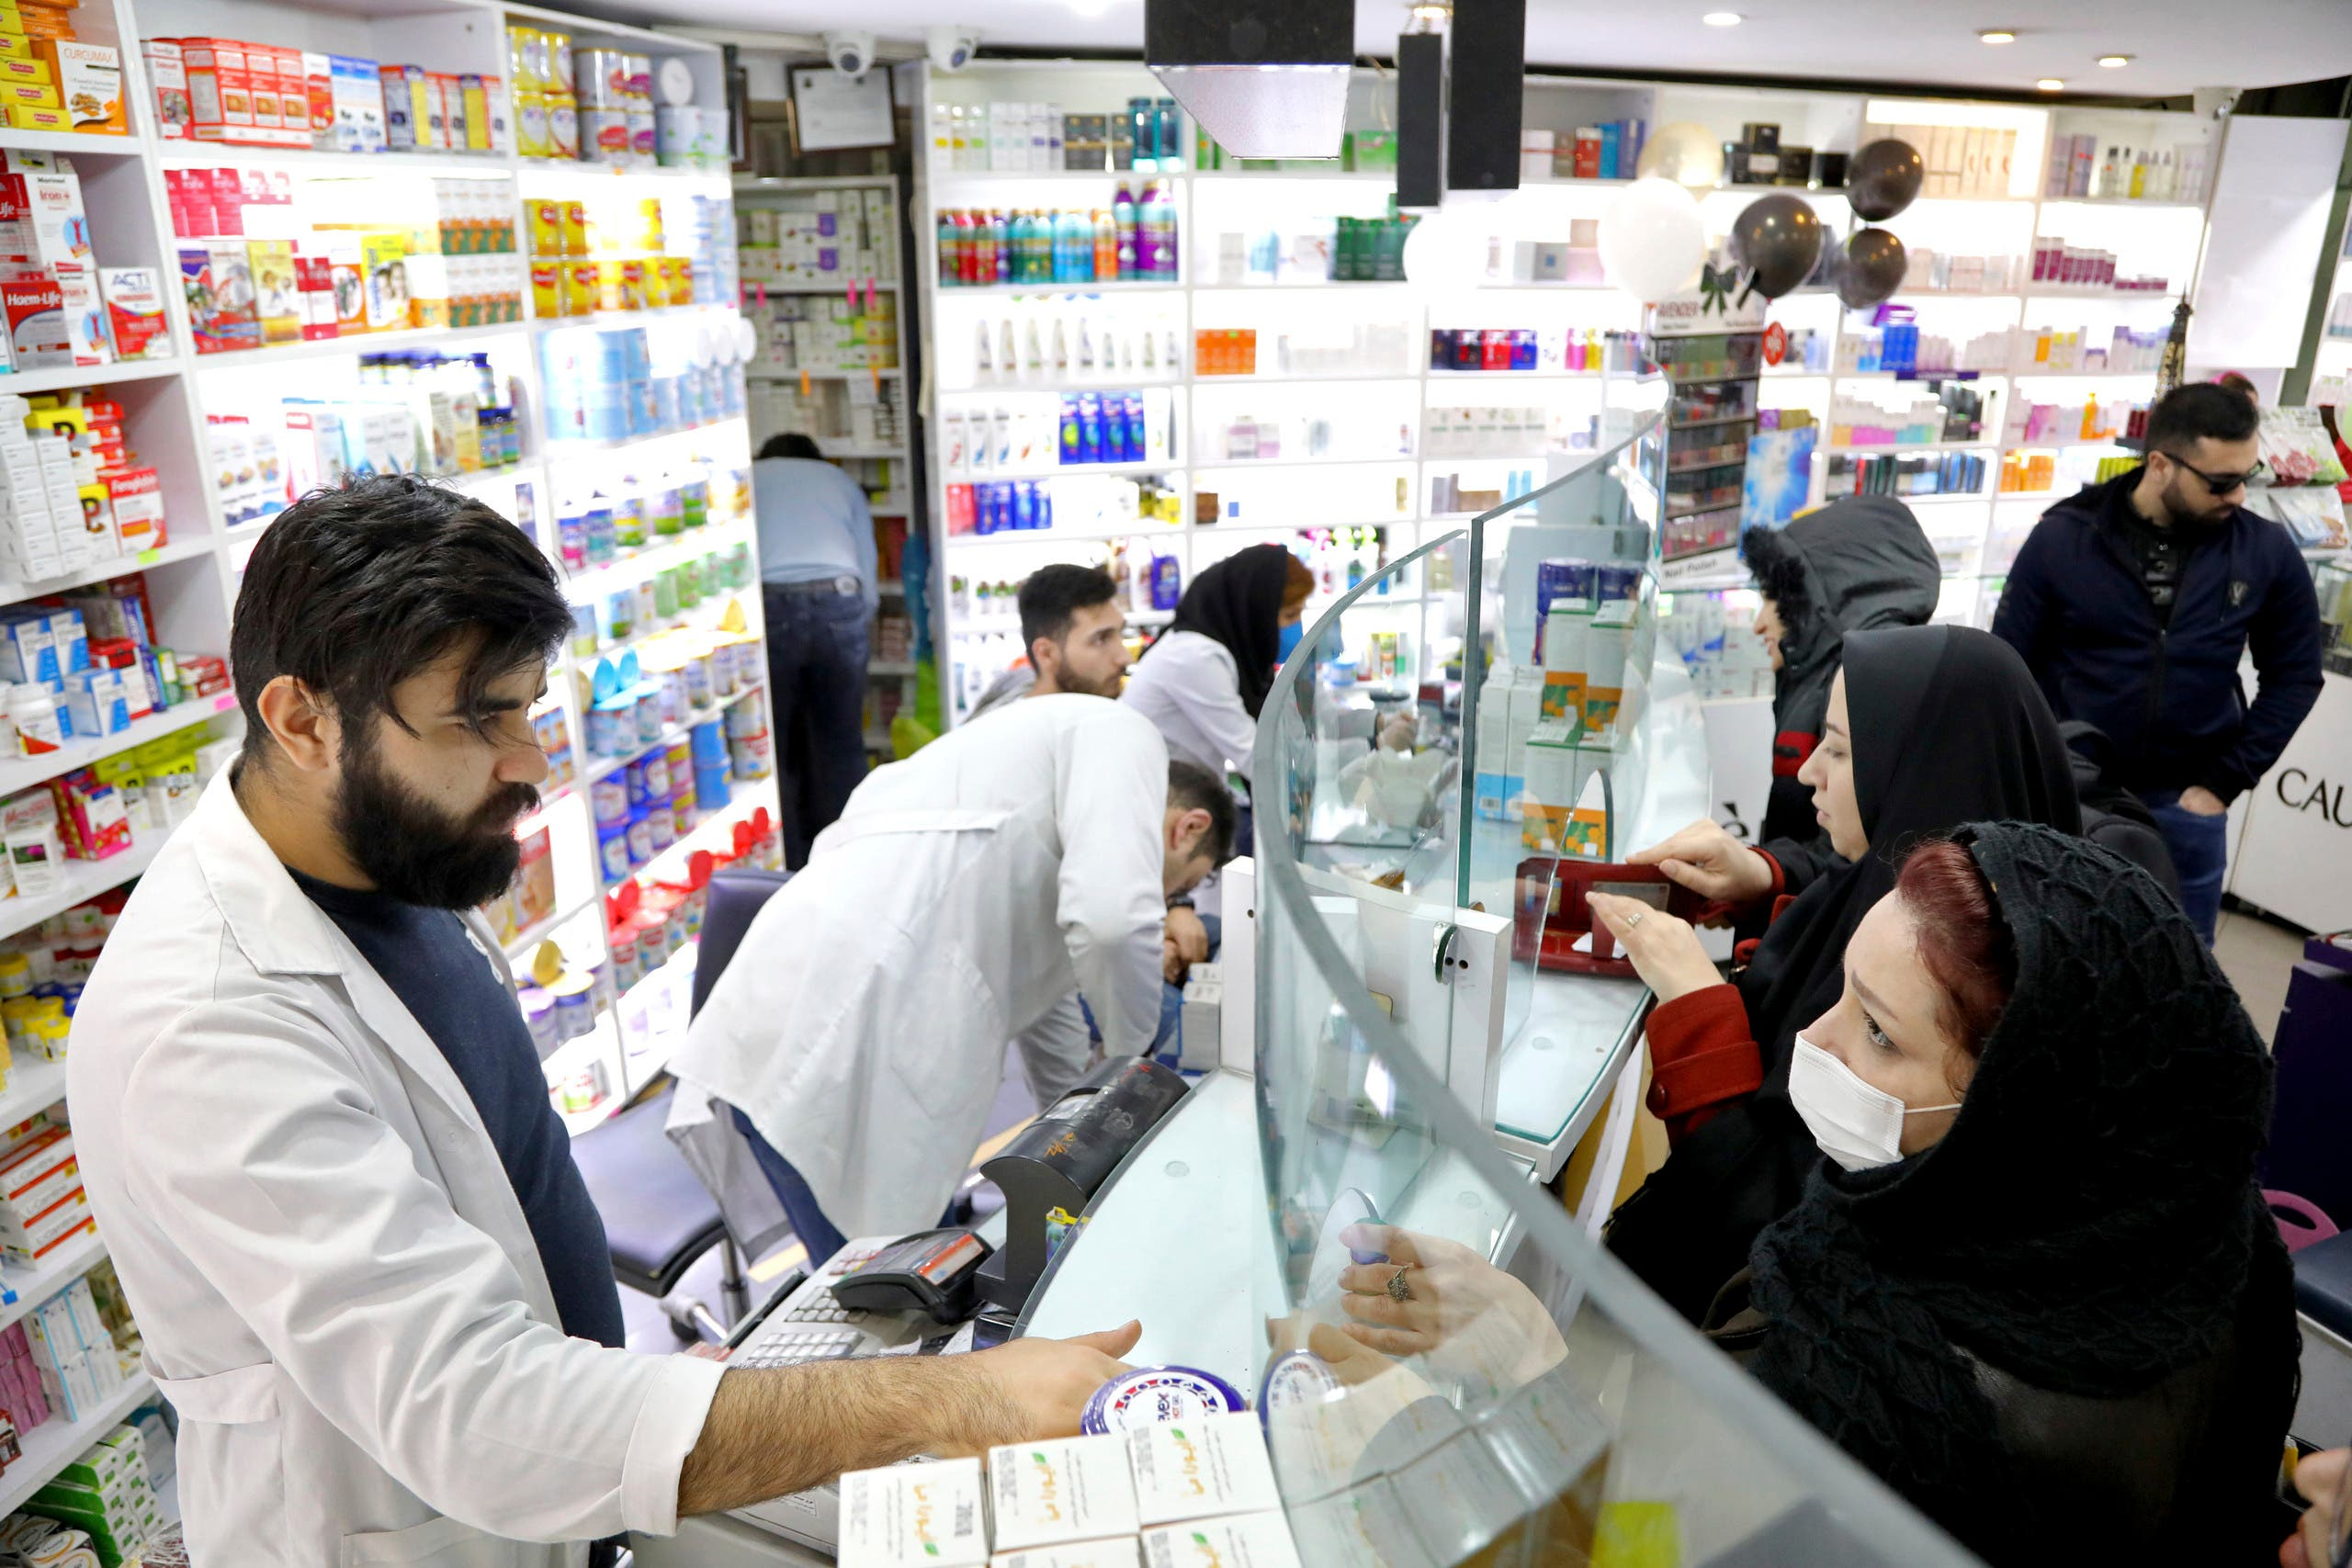 South Korea to ship $500,000 worth of medicine to Iran as humanitarian export